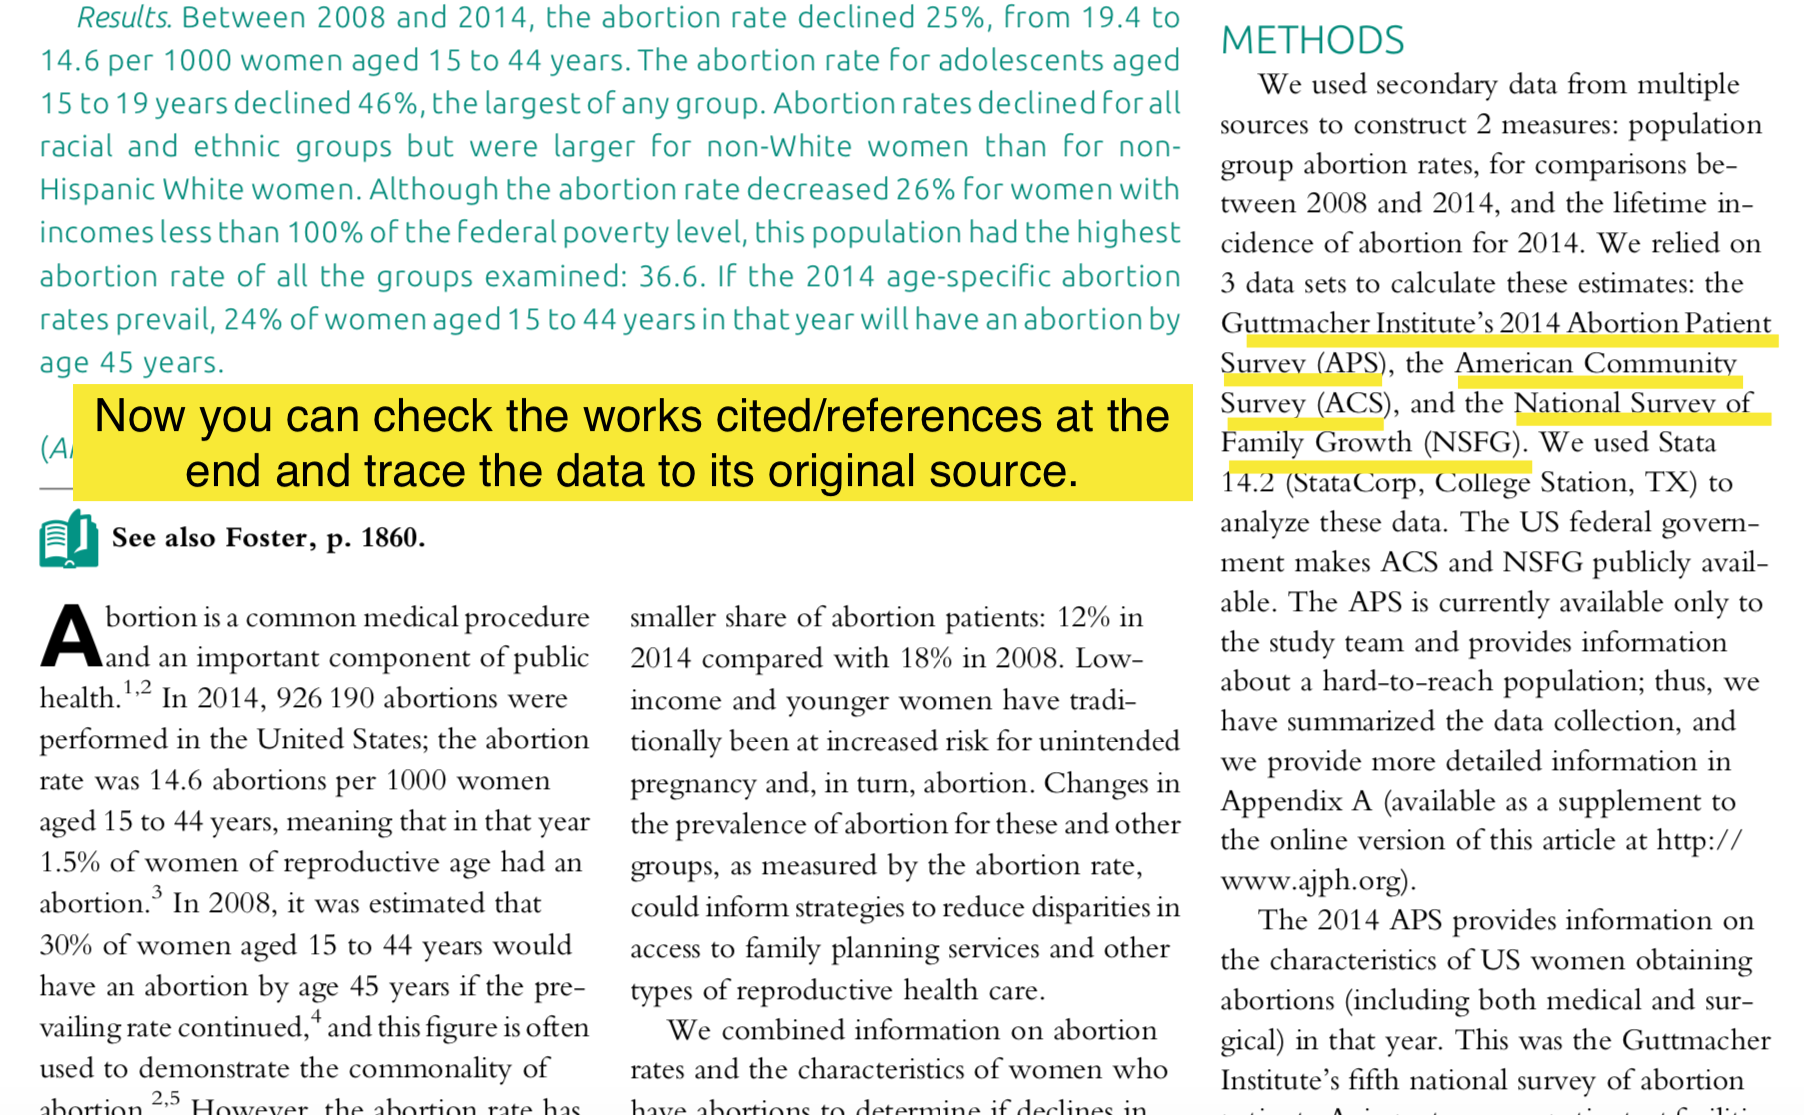 the authors cite where they got their data in the methods section. you can check the references section at the end of the paper to trace the data to its original source.